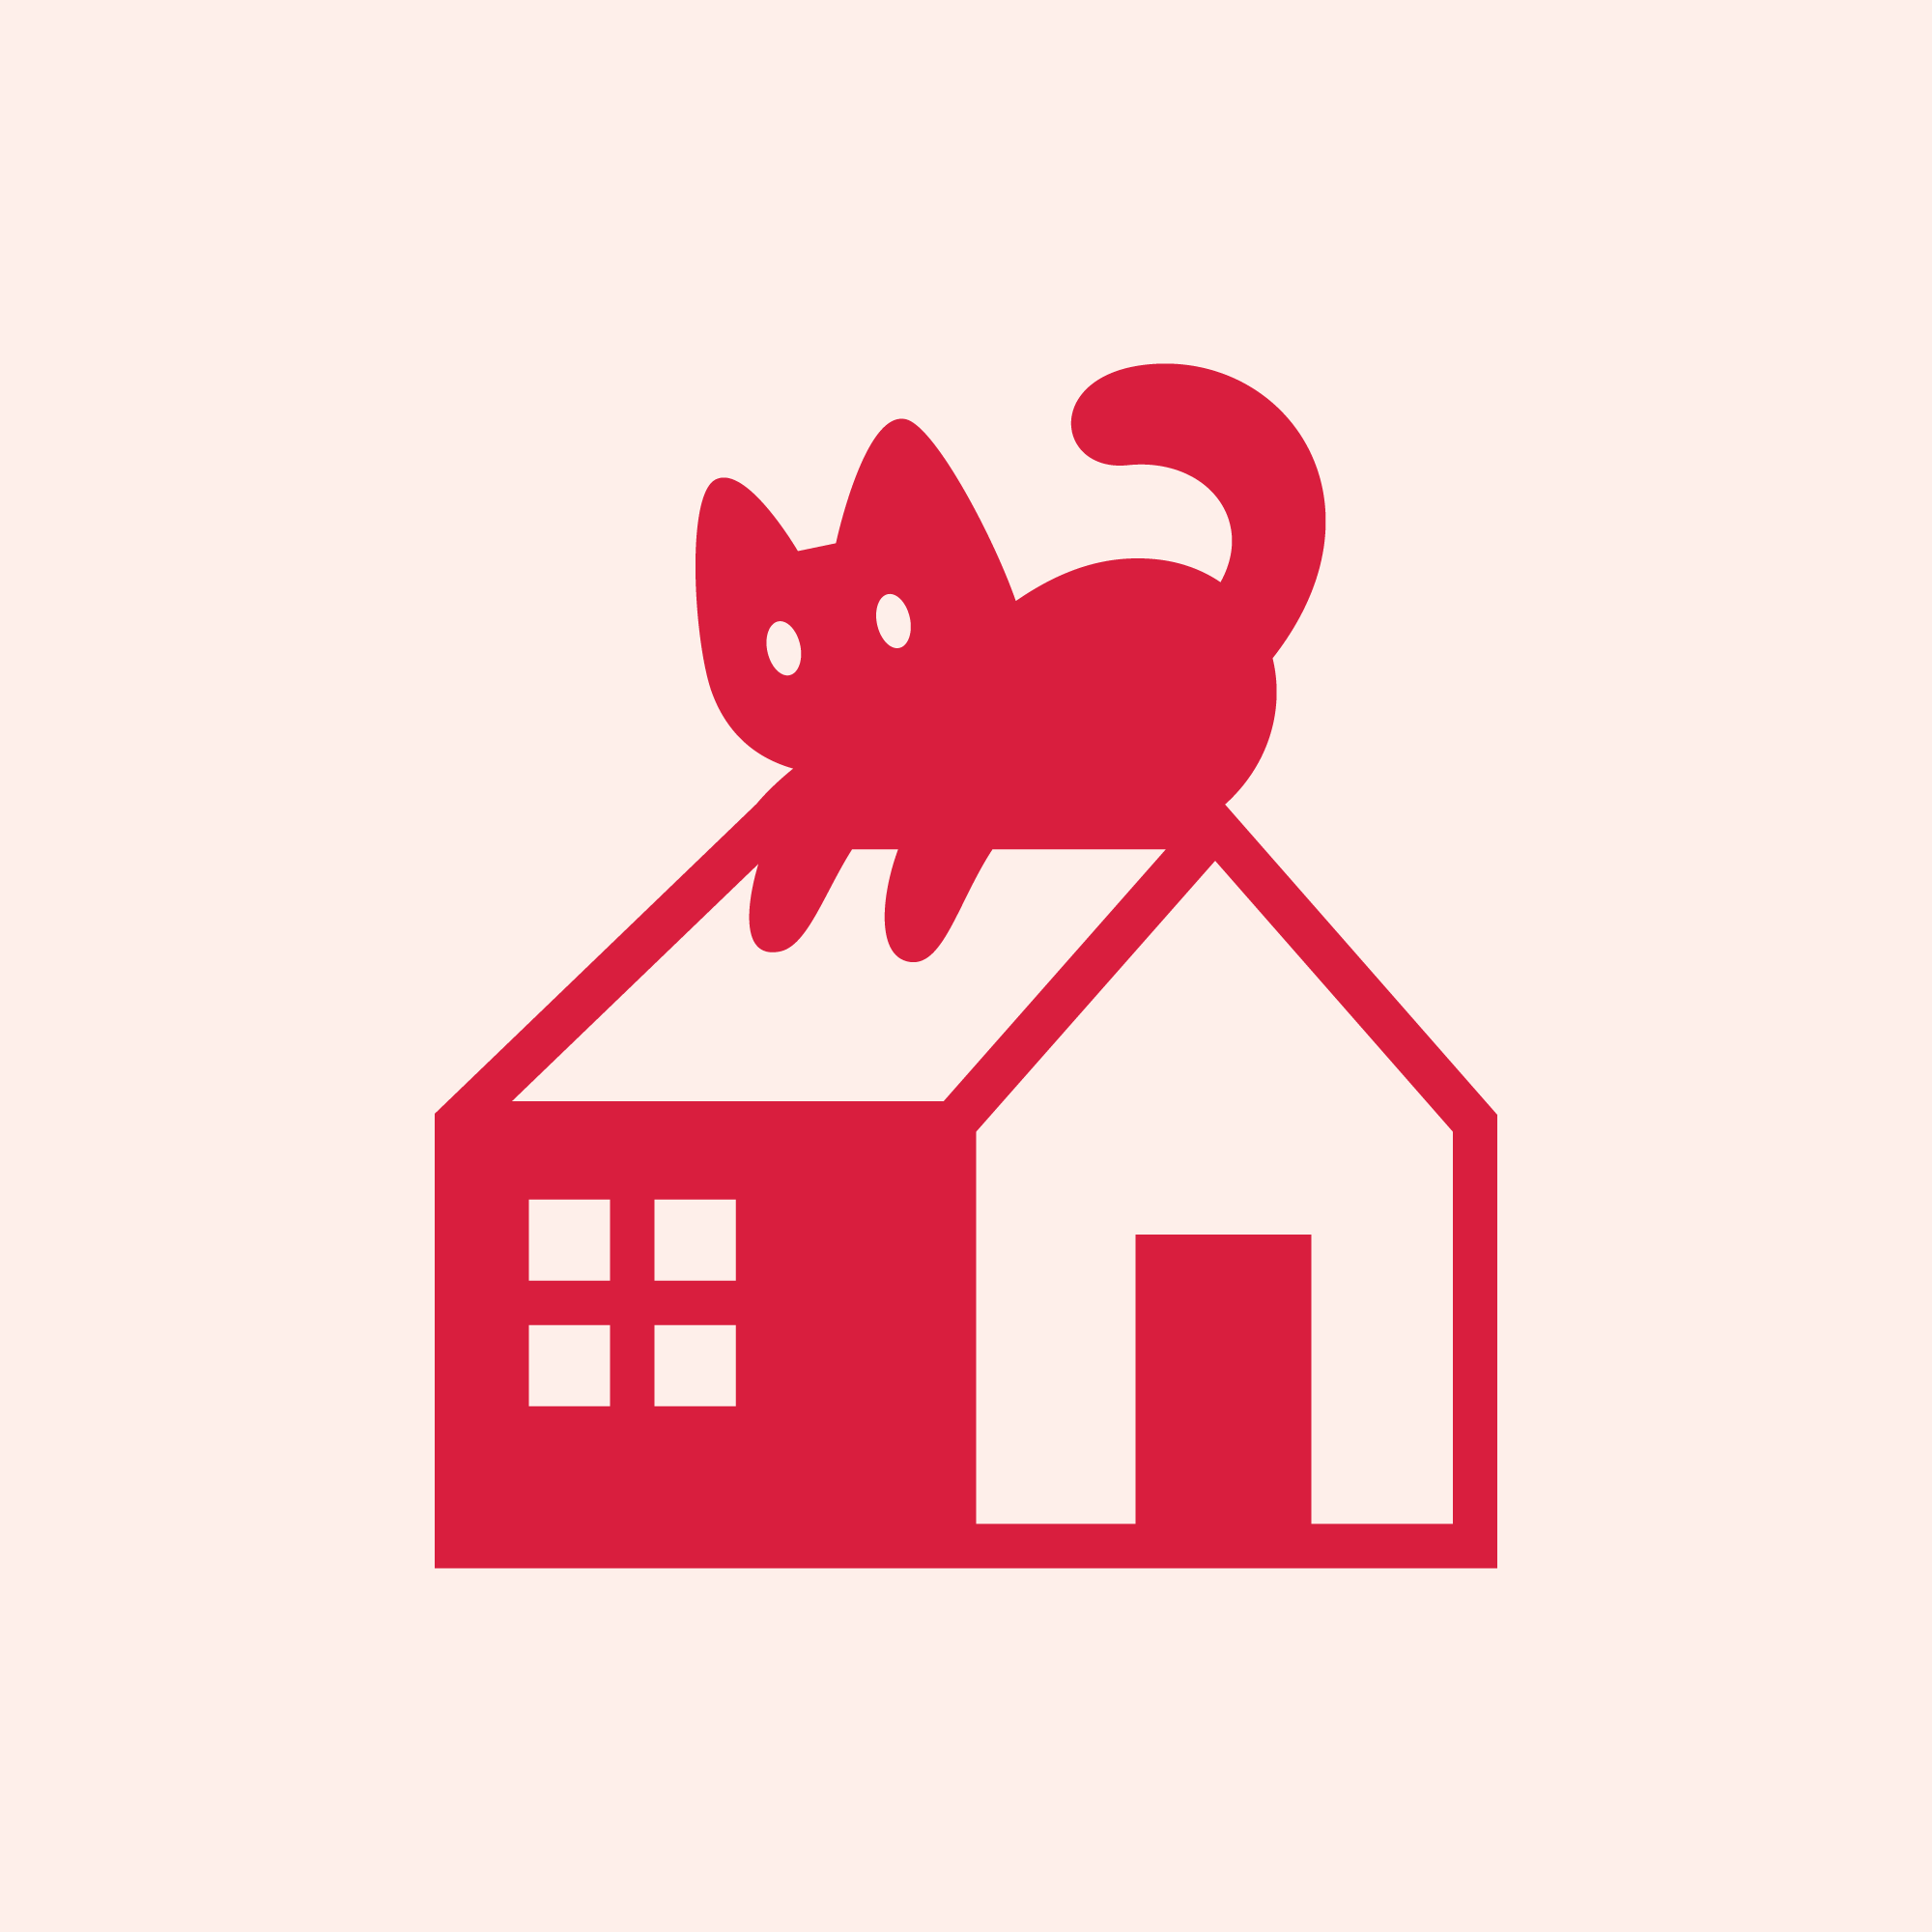 catsforc-square-red.png